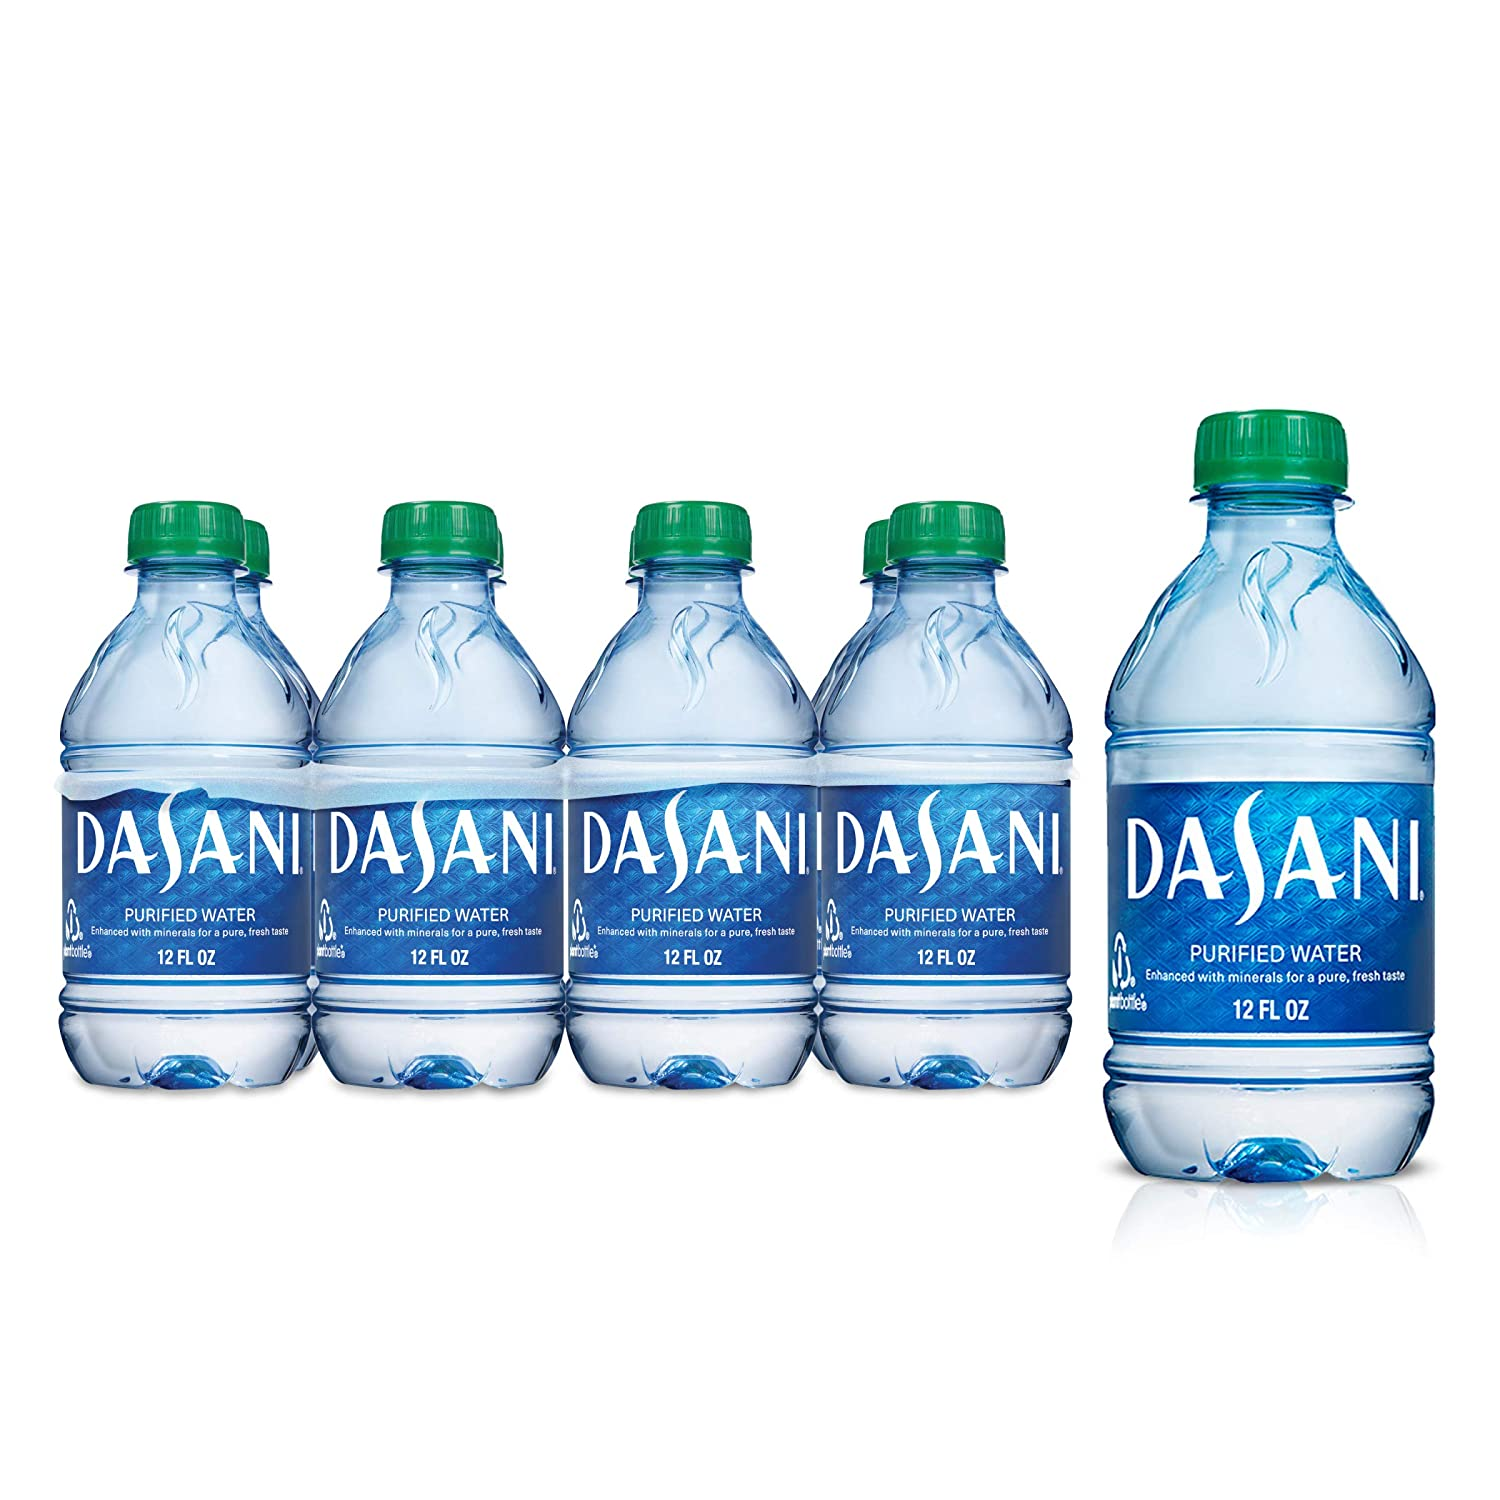 DASANI Purified Water Enhanced with Minerals, 12 fl oz (pack of 8)